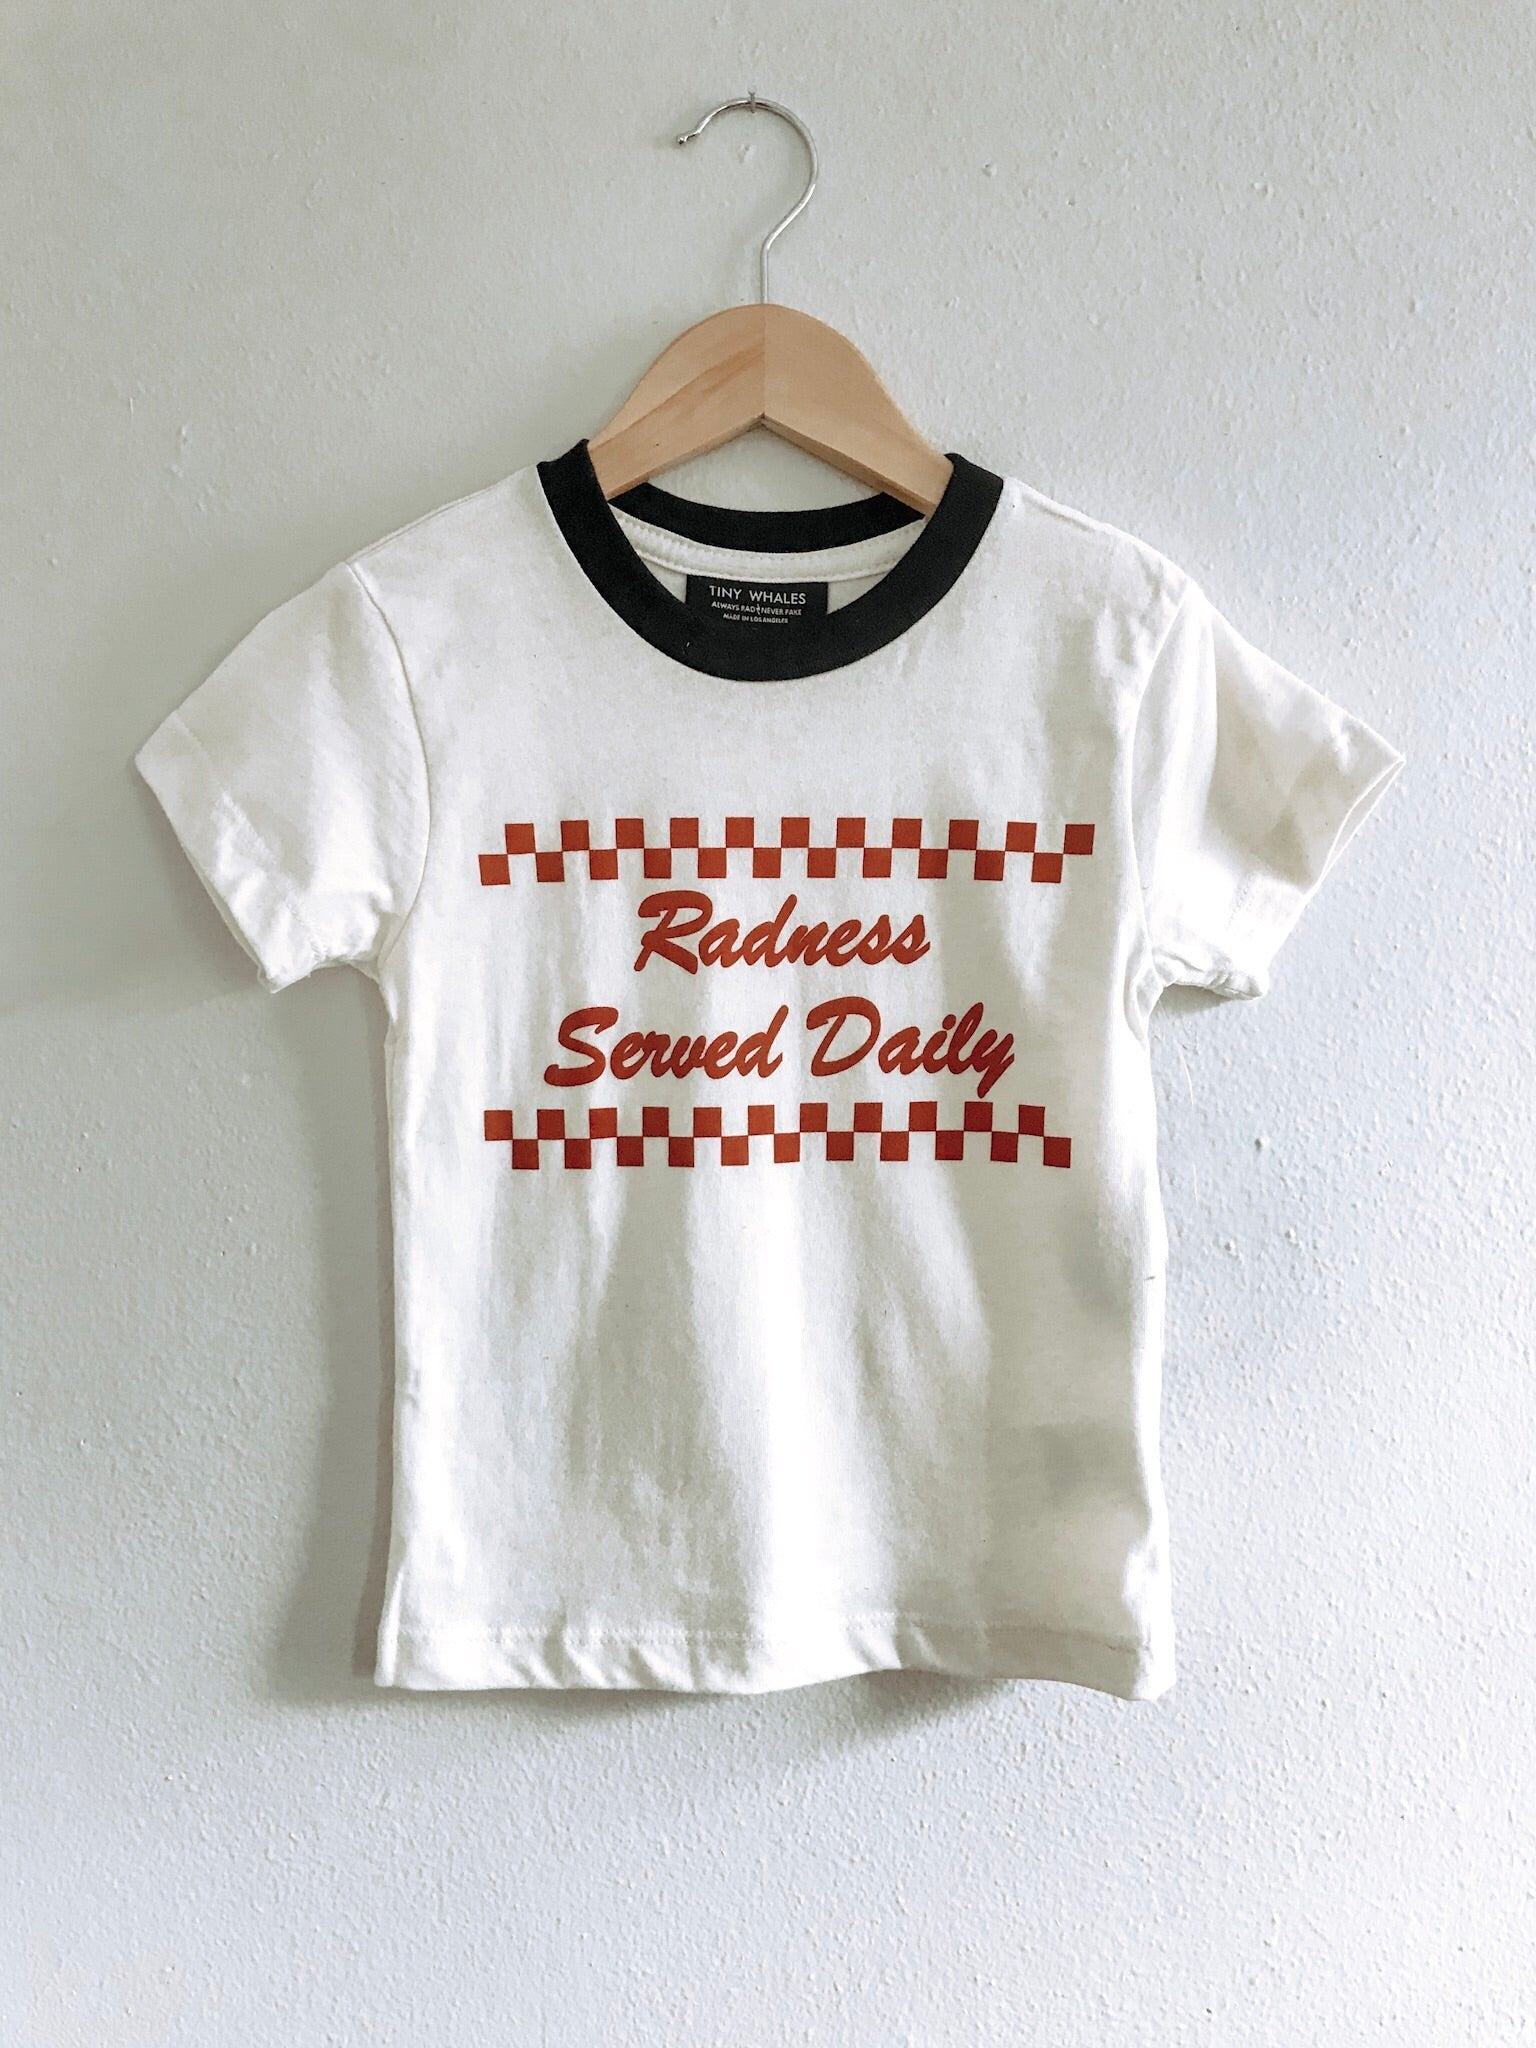 Radness Served Daily Tee